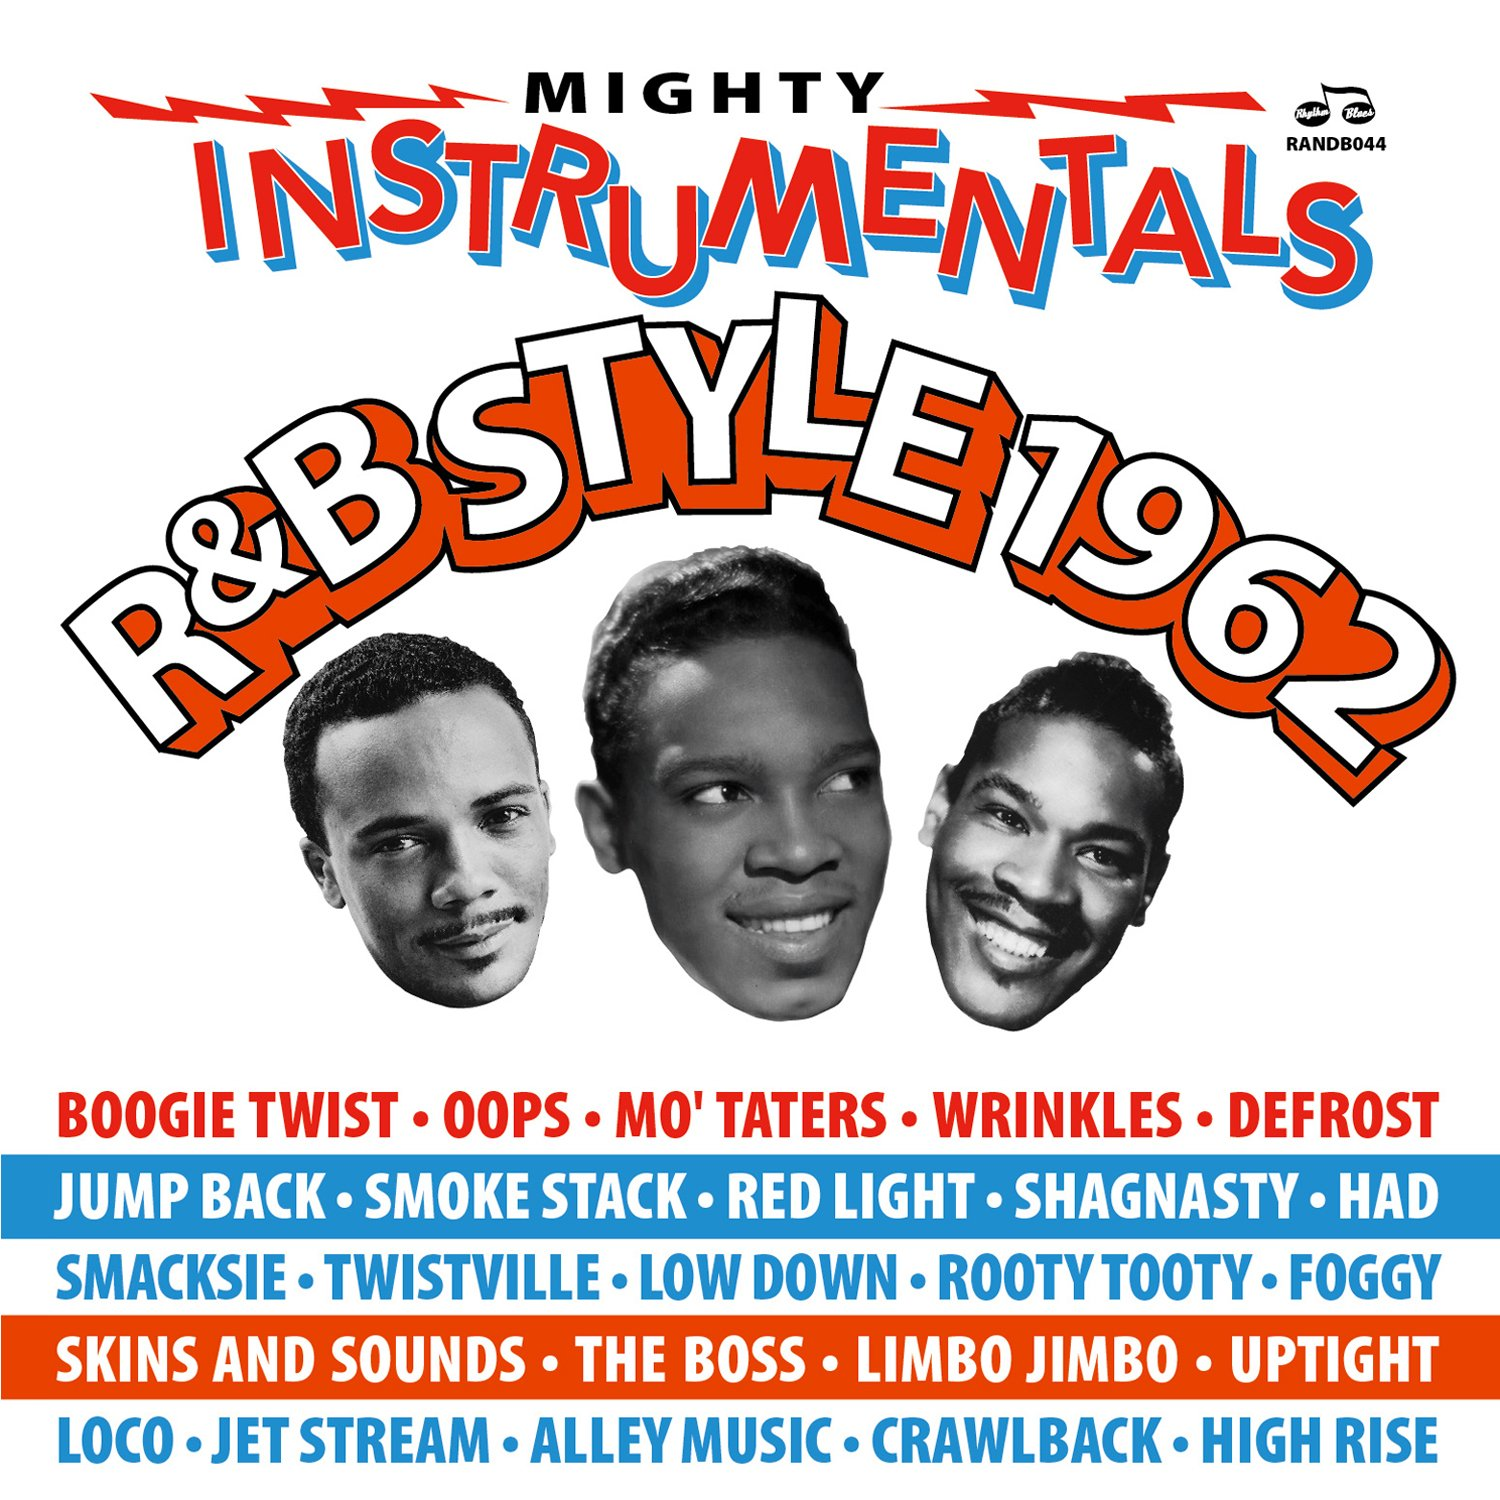 Mighty Instrumentals R&B-Style 1962